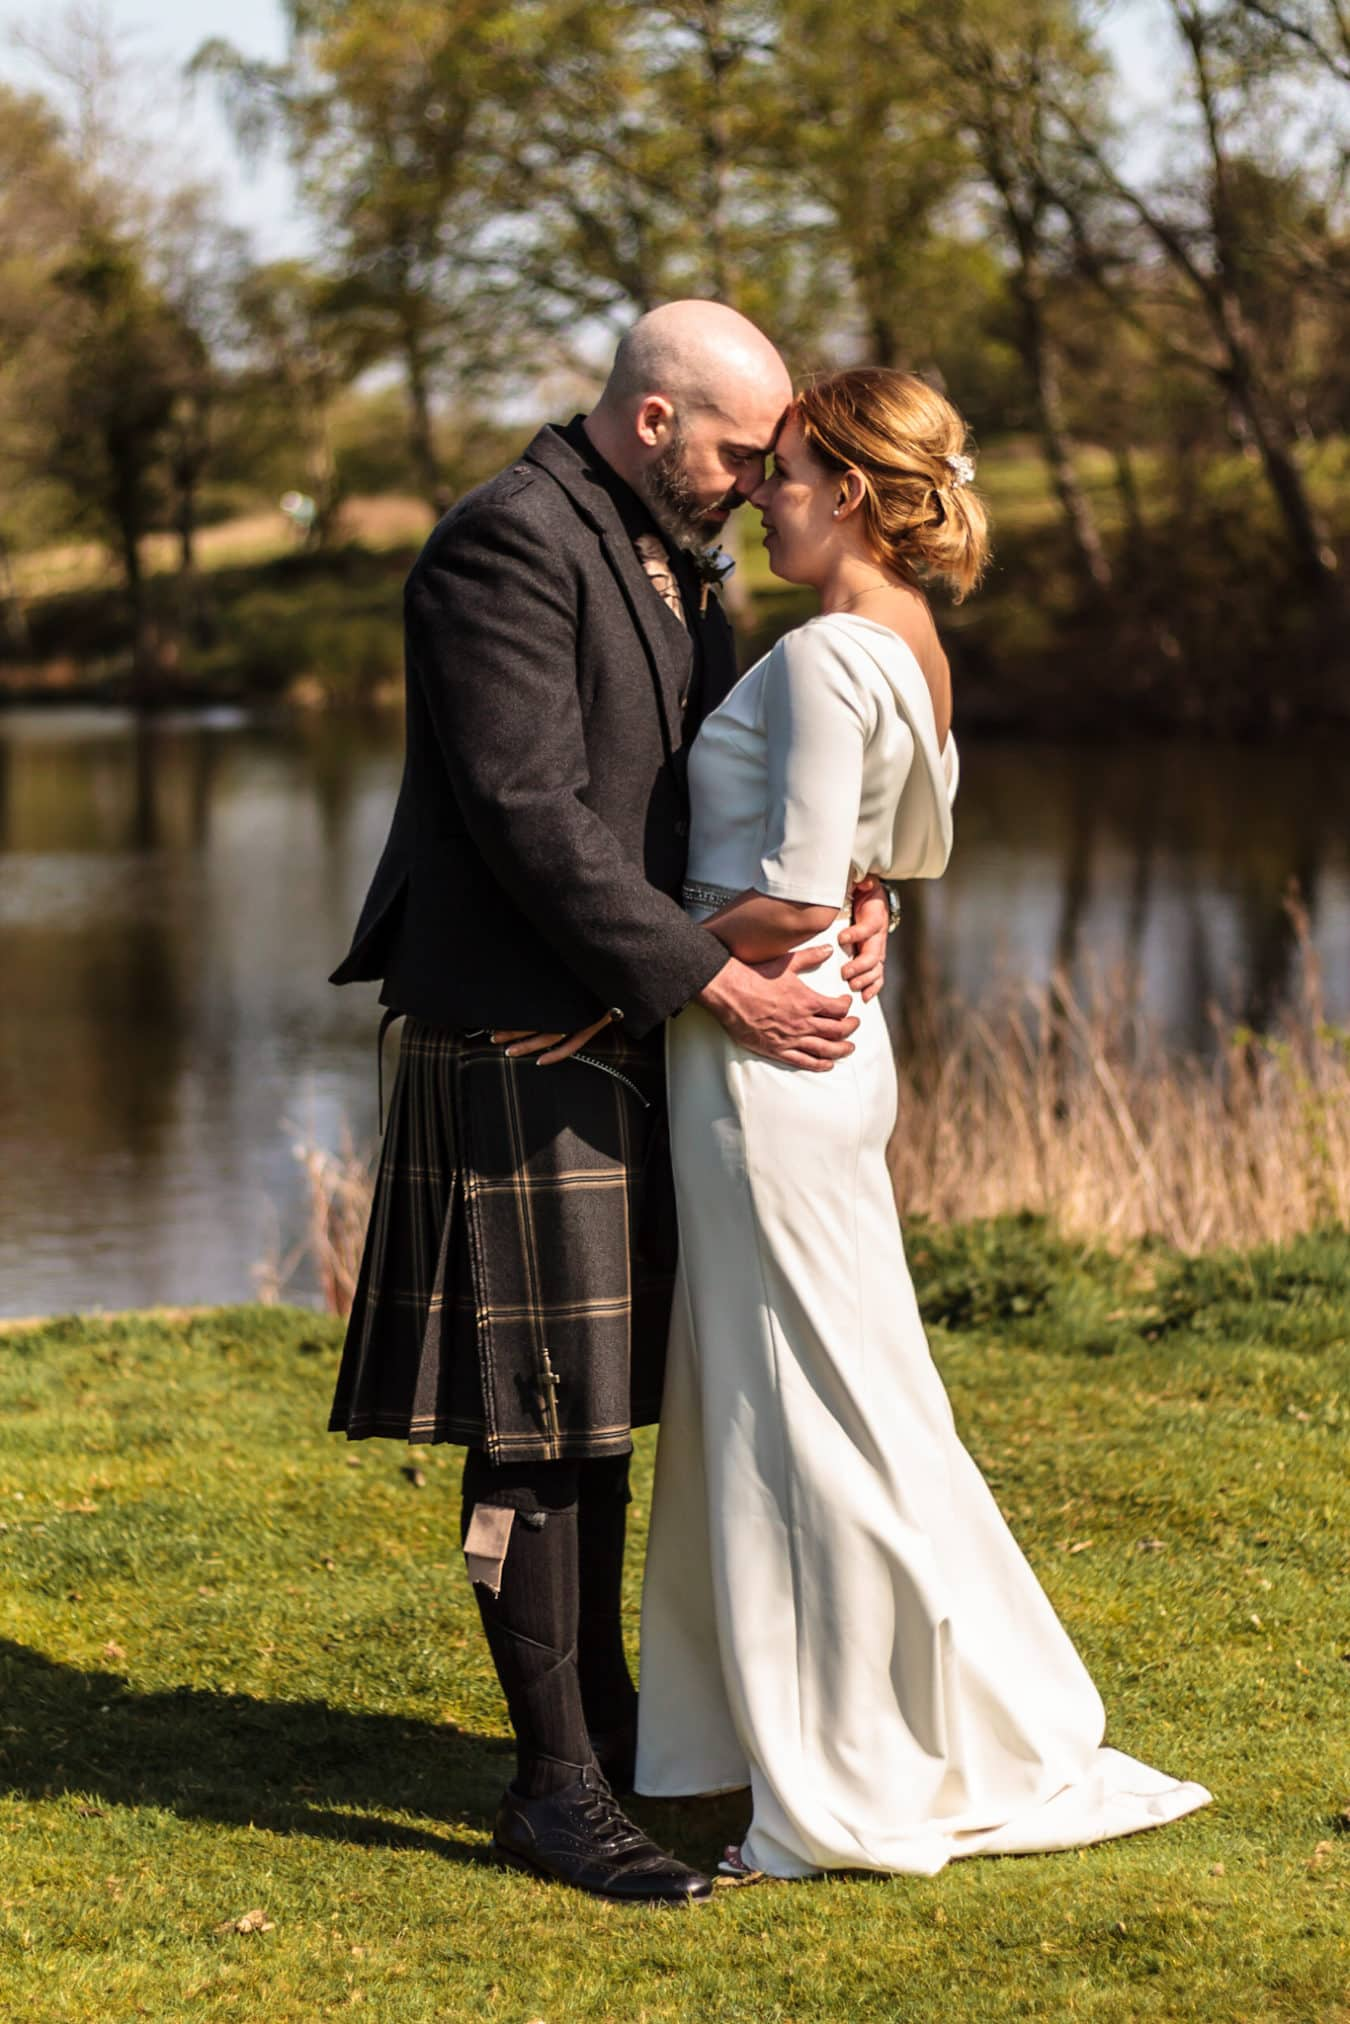 chronicle-pix-scottish-wedding-photography-loch-groom-bride